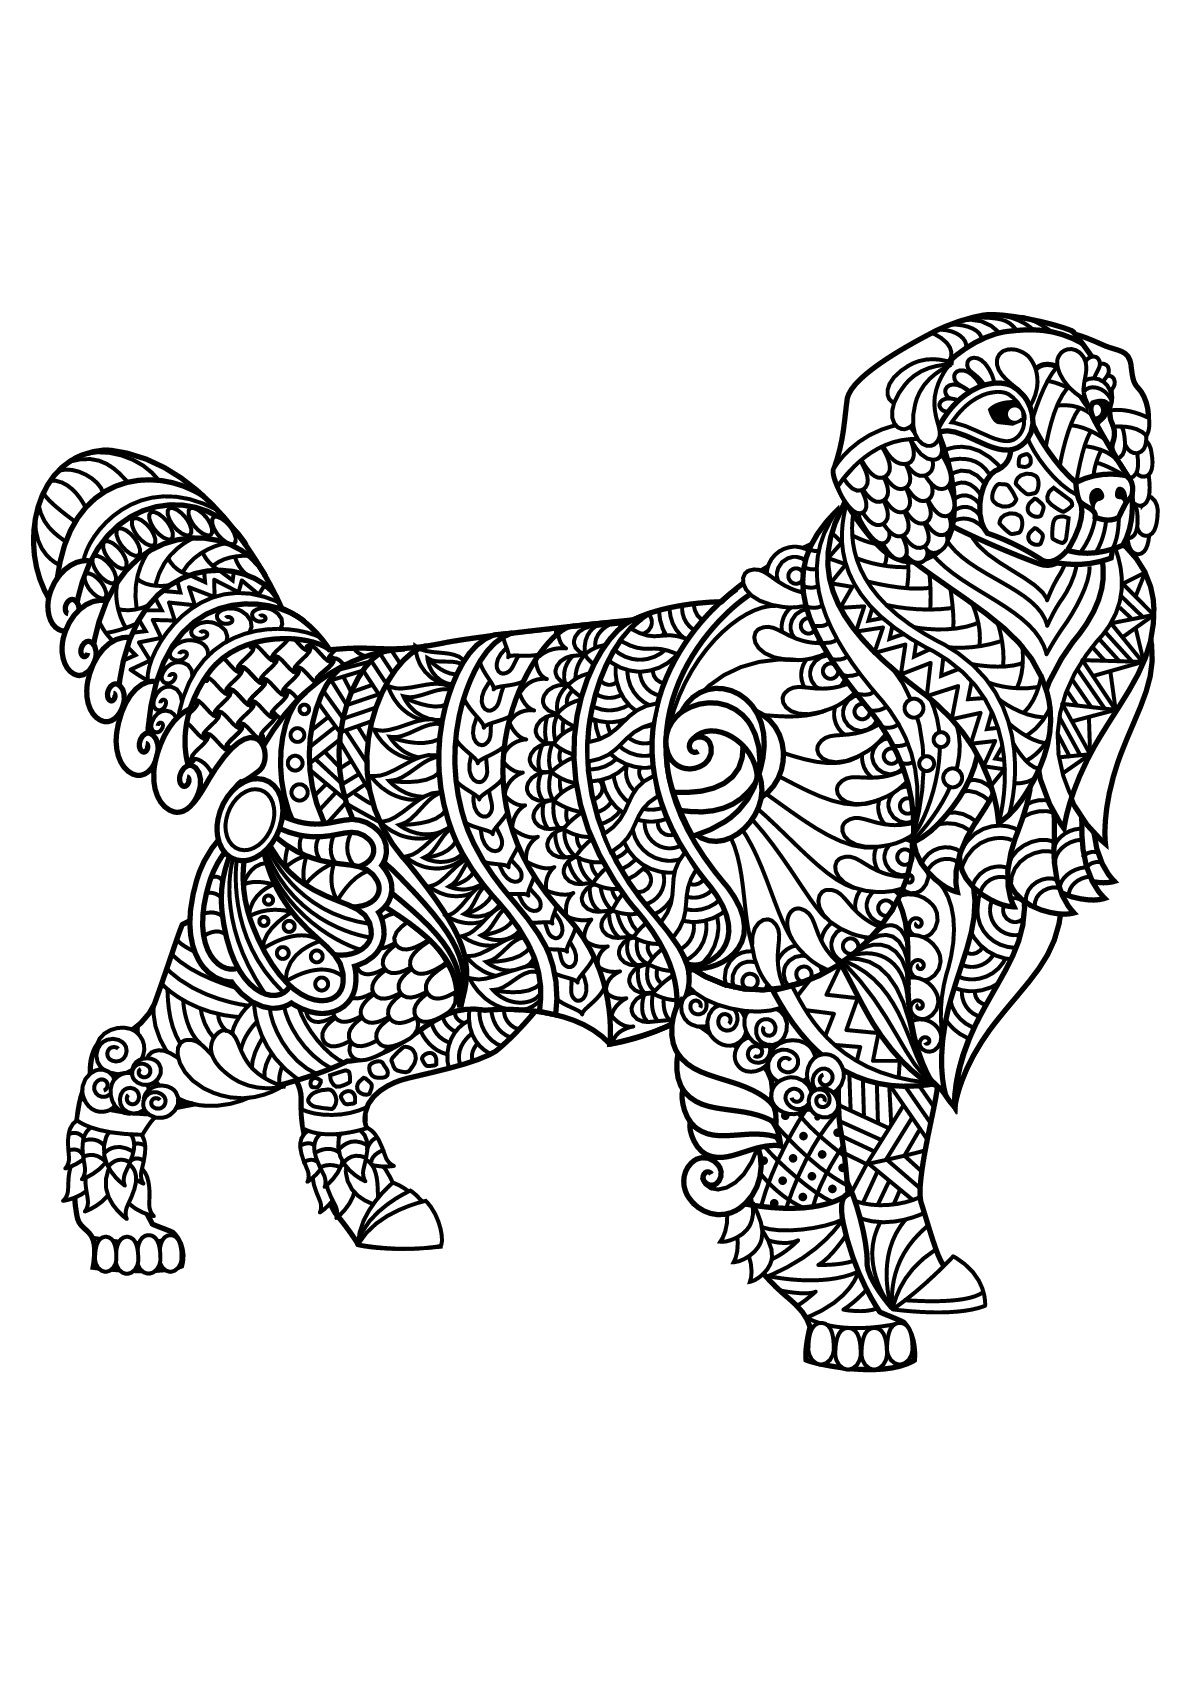 Dogs coloring pages 84